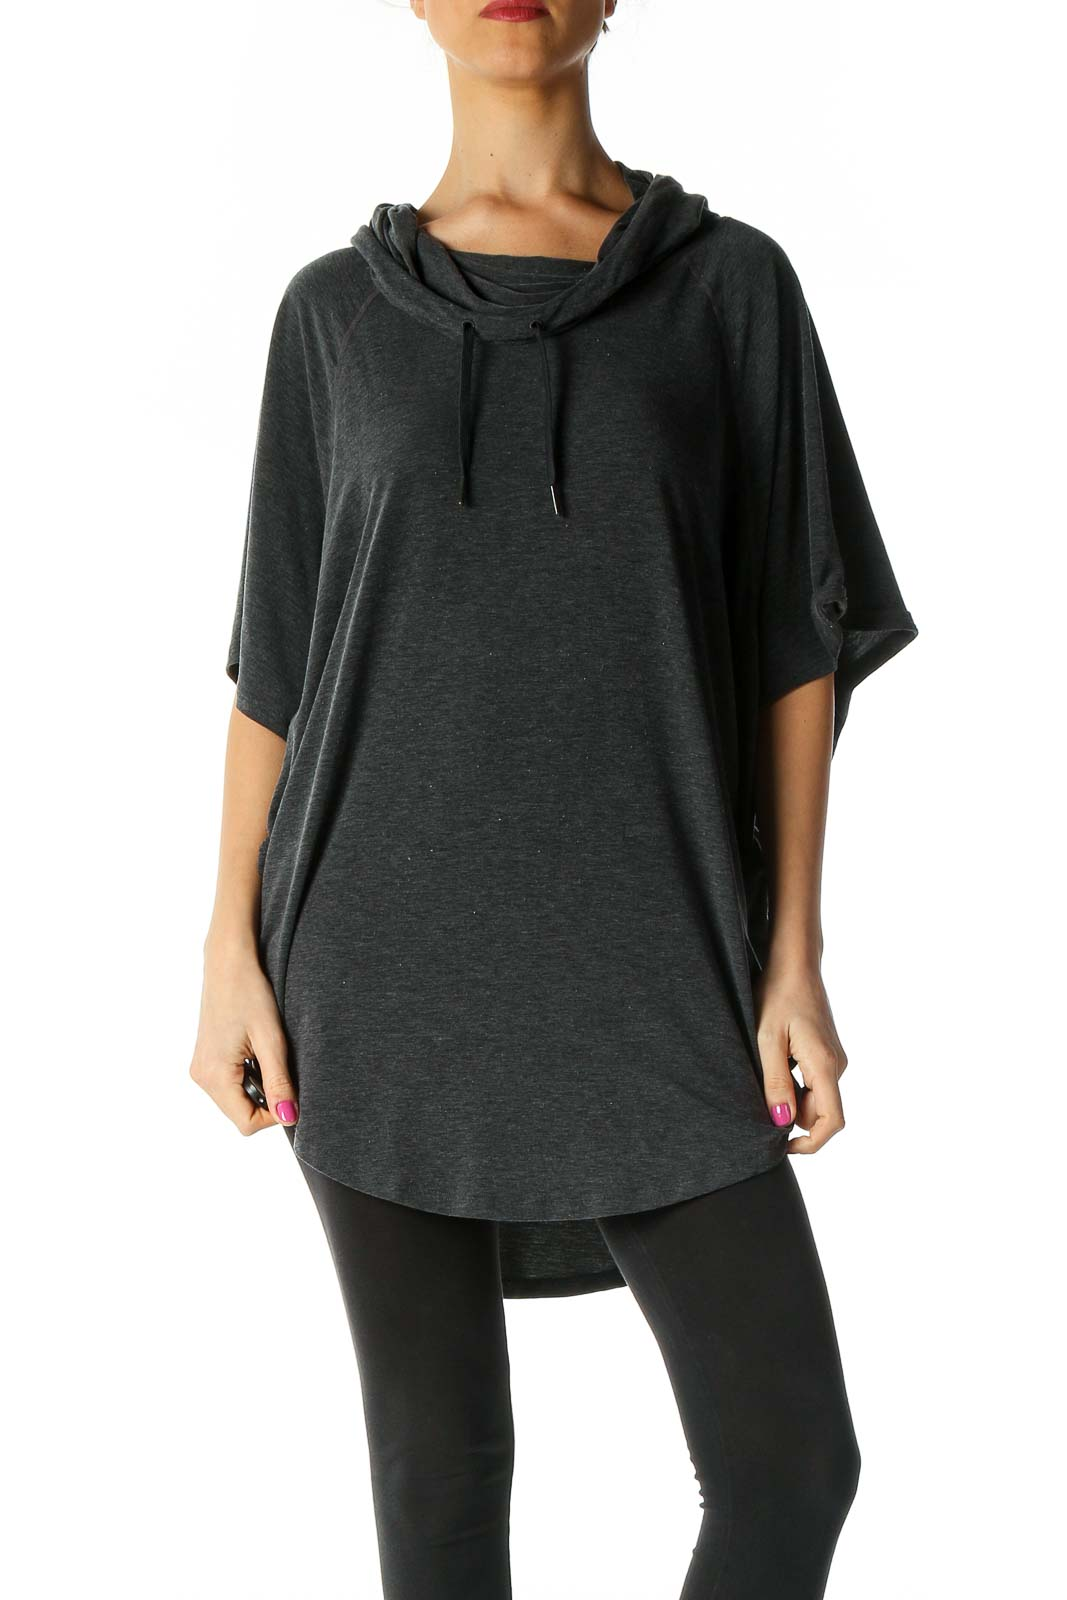 Black Solid Casual T-Shirt Front